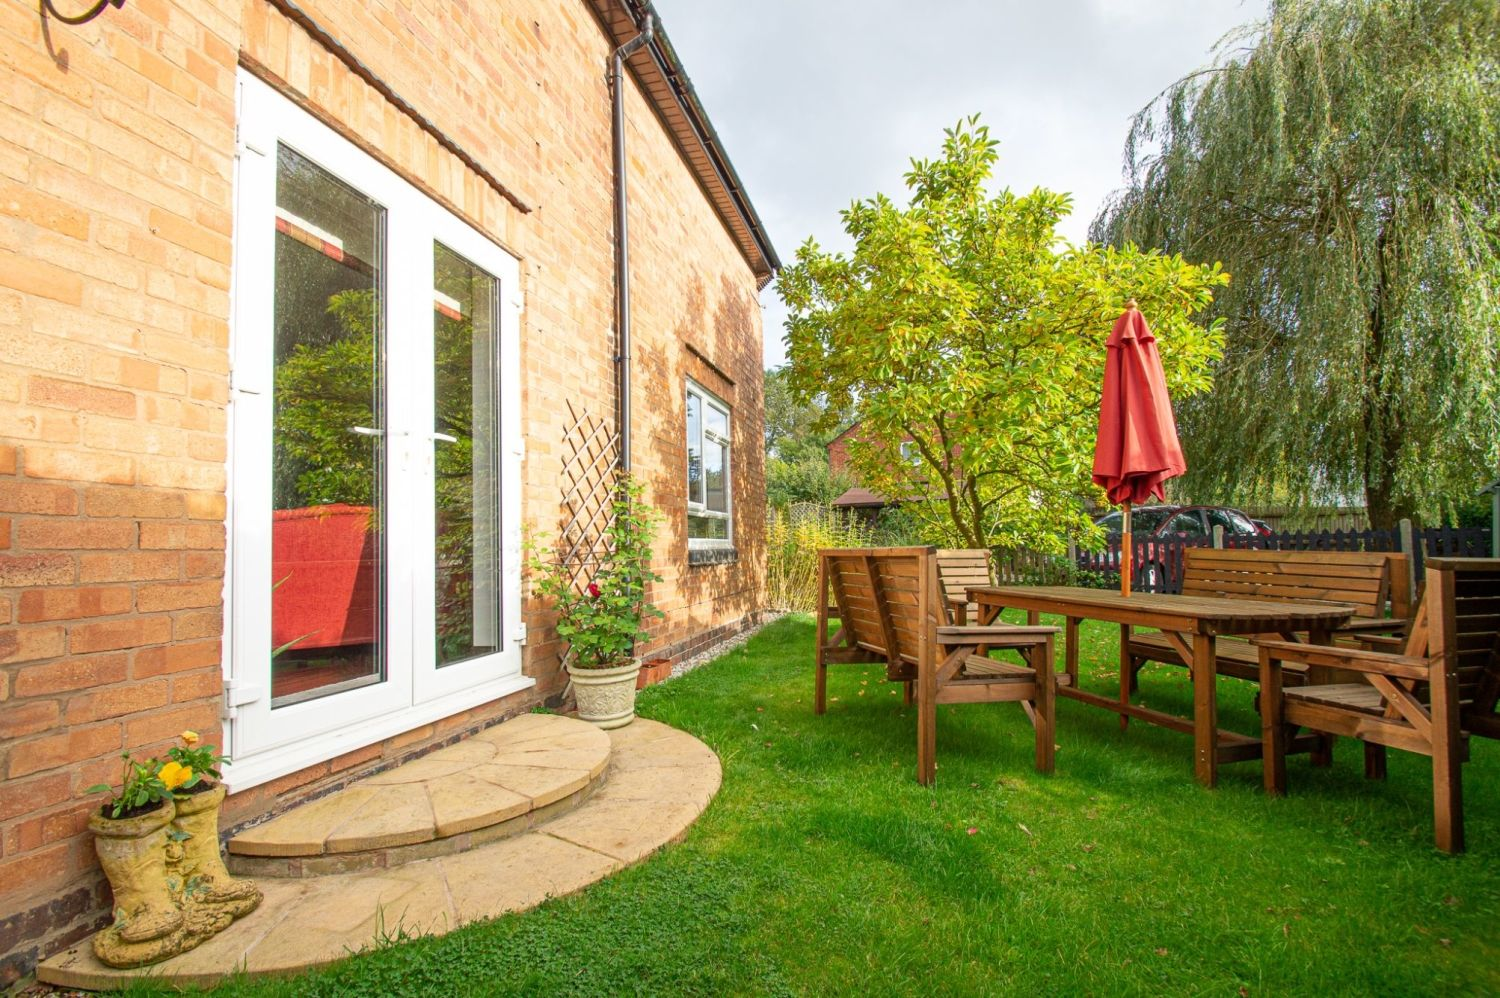 3 bed detached for sale in Longhope Close, Winyates Green  - Property Image 21